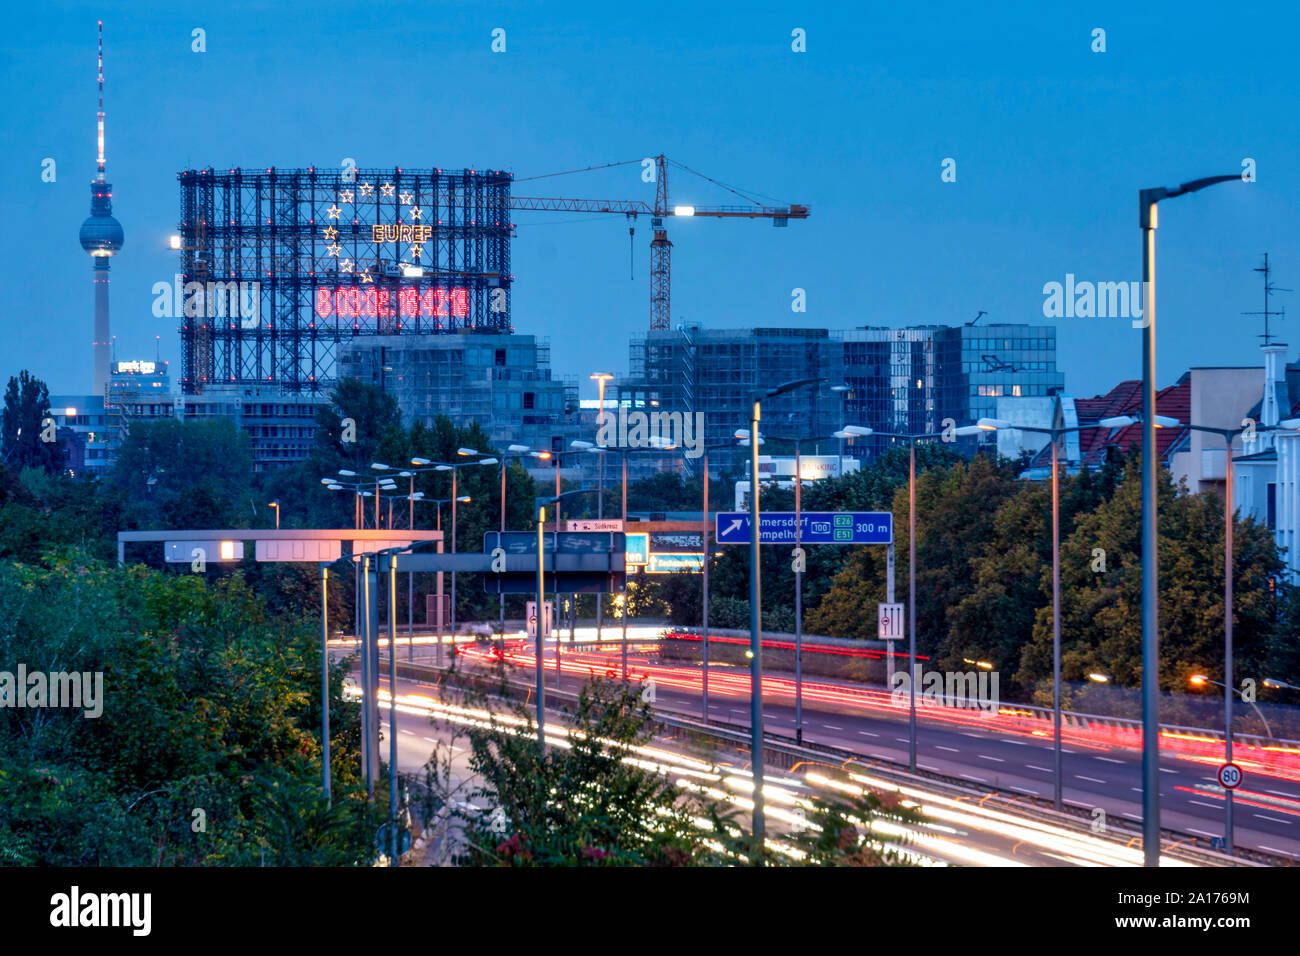 Climate Countdown at the Gasometer on the EUREF Campus in Schöneberg, A 100 highway, Stock Photo